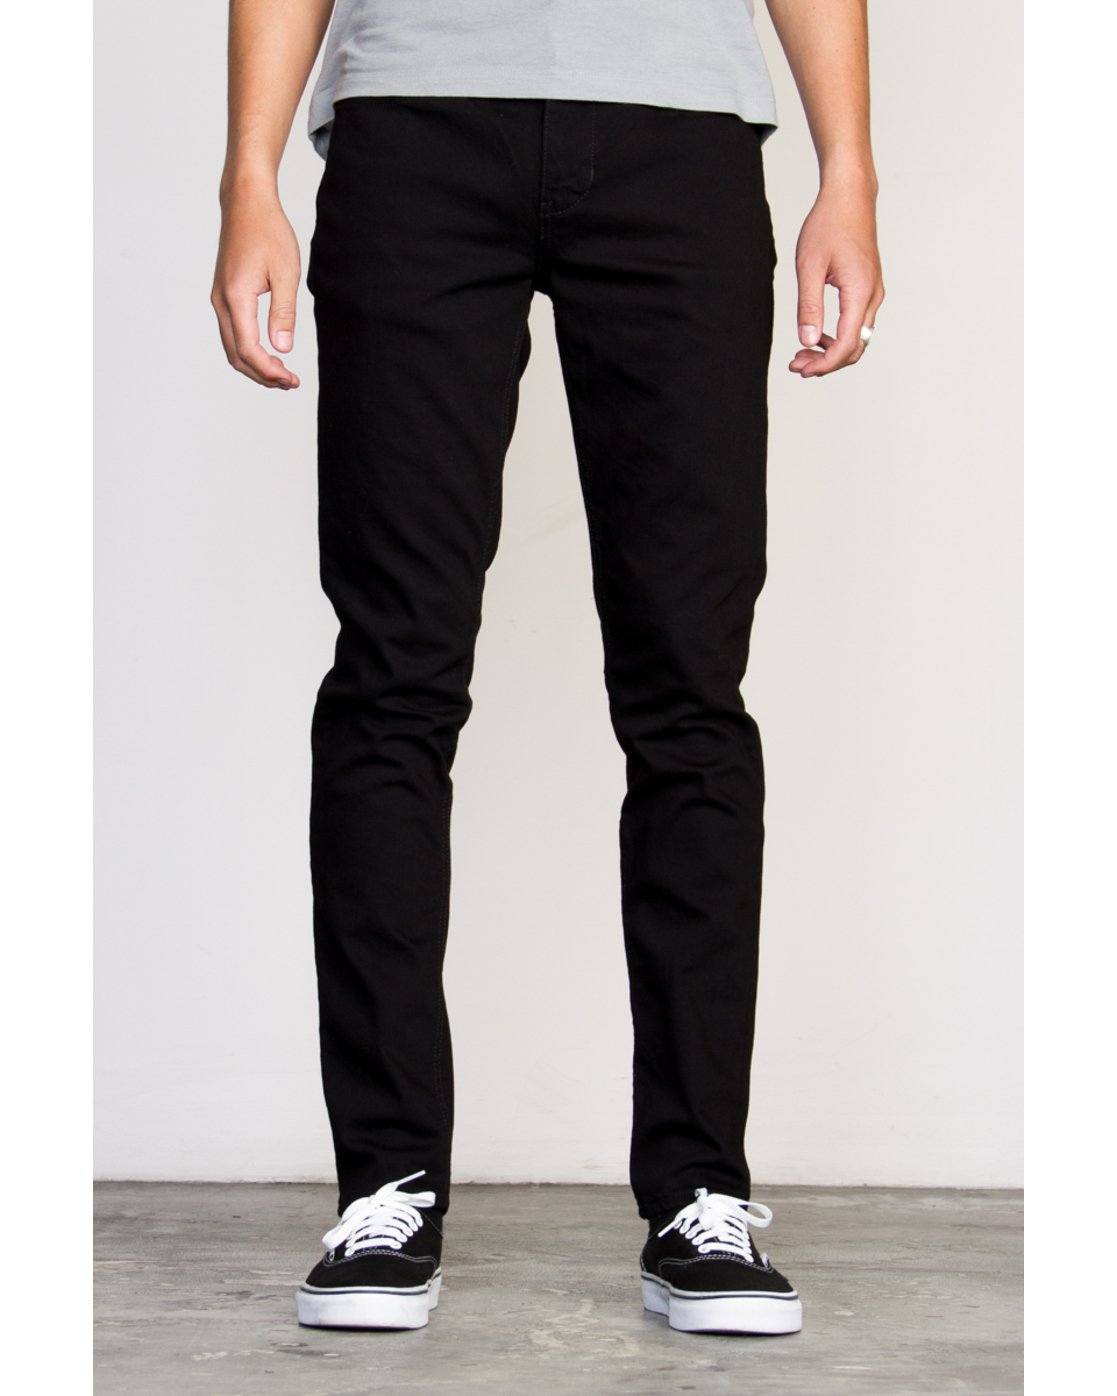 0 RVCA ROCKERS DENIM Black Z1PNRARVF6 RVCA